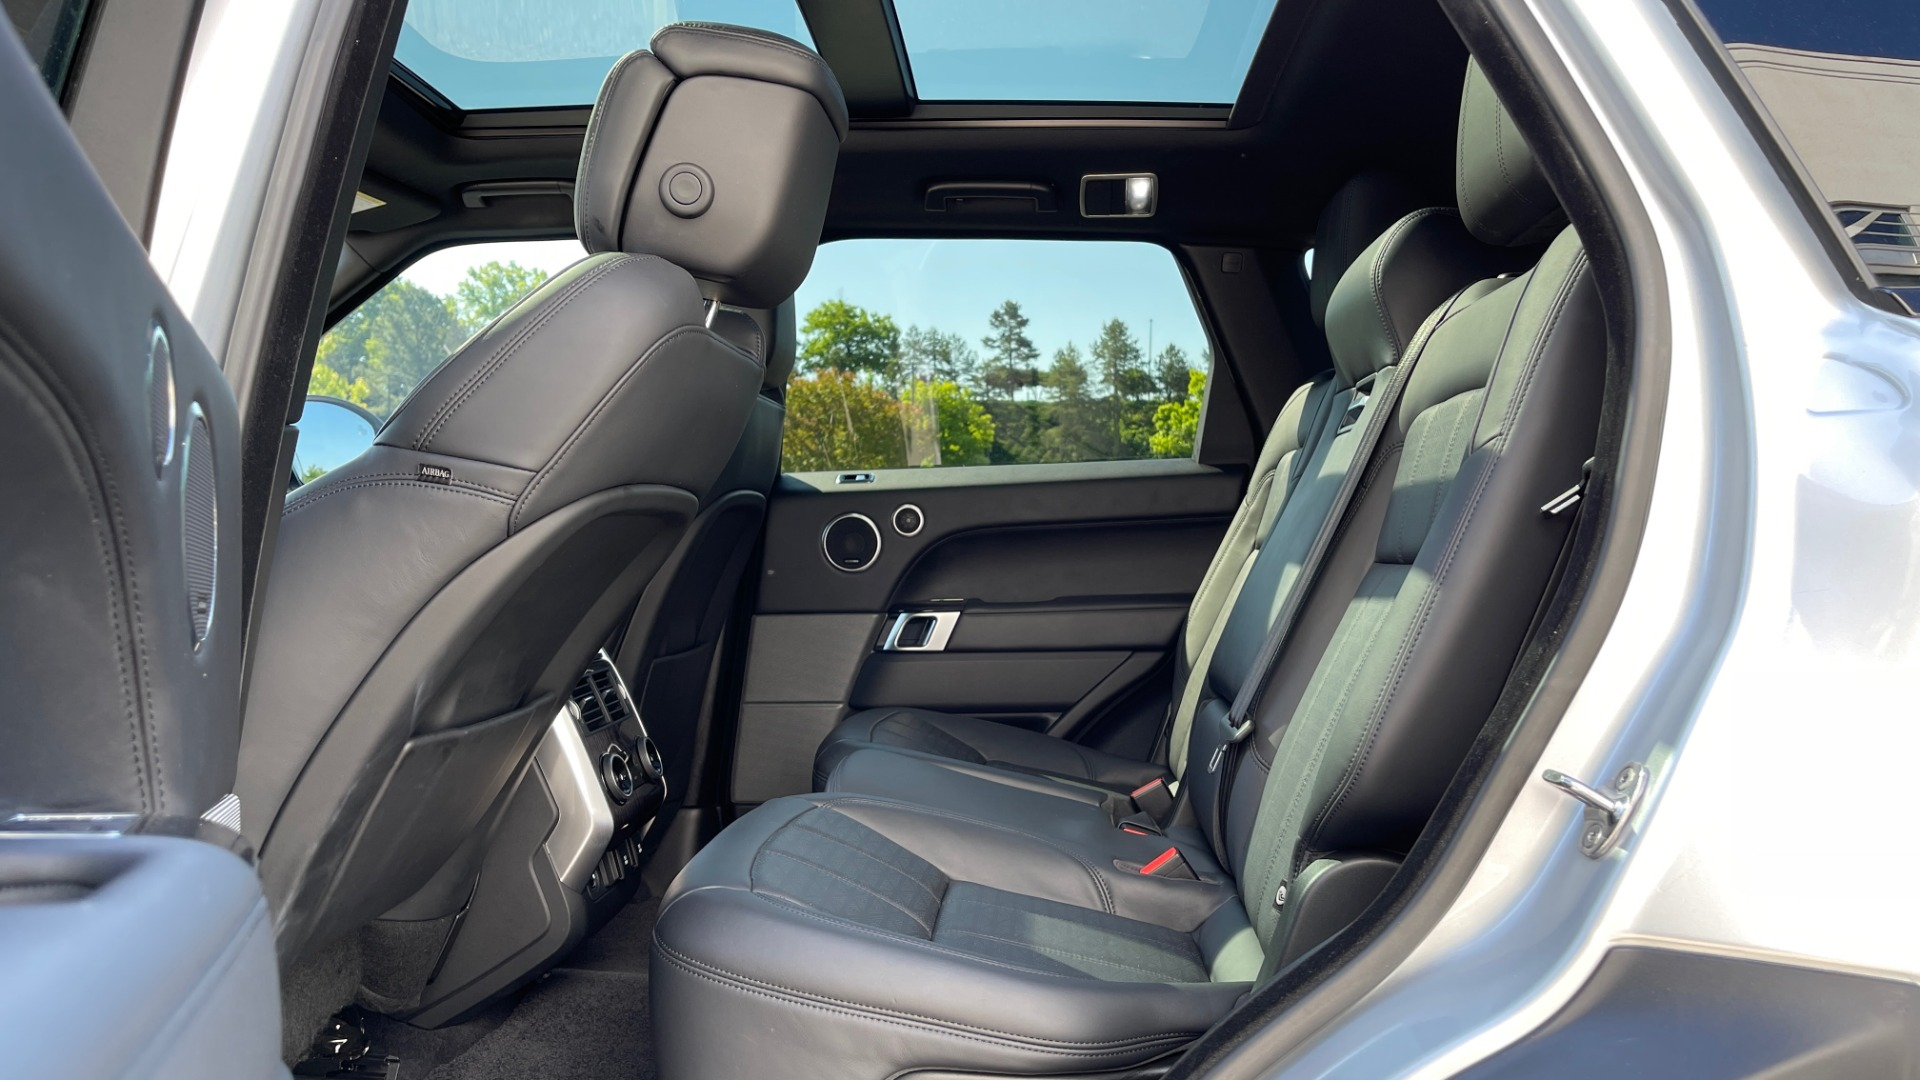 Used 2019 Land Rover RANGE ROVER SPORT HSE DYNAMIC / 3.0L SC V6 / 8-SPD / APPLE / NAV / SUNROOF / REARVIEW for sale Sold at Formula Imports in Charlotte NC 28227 66